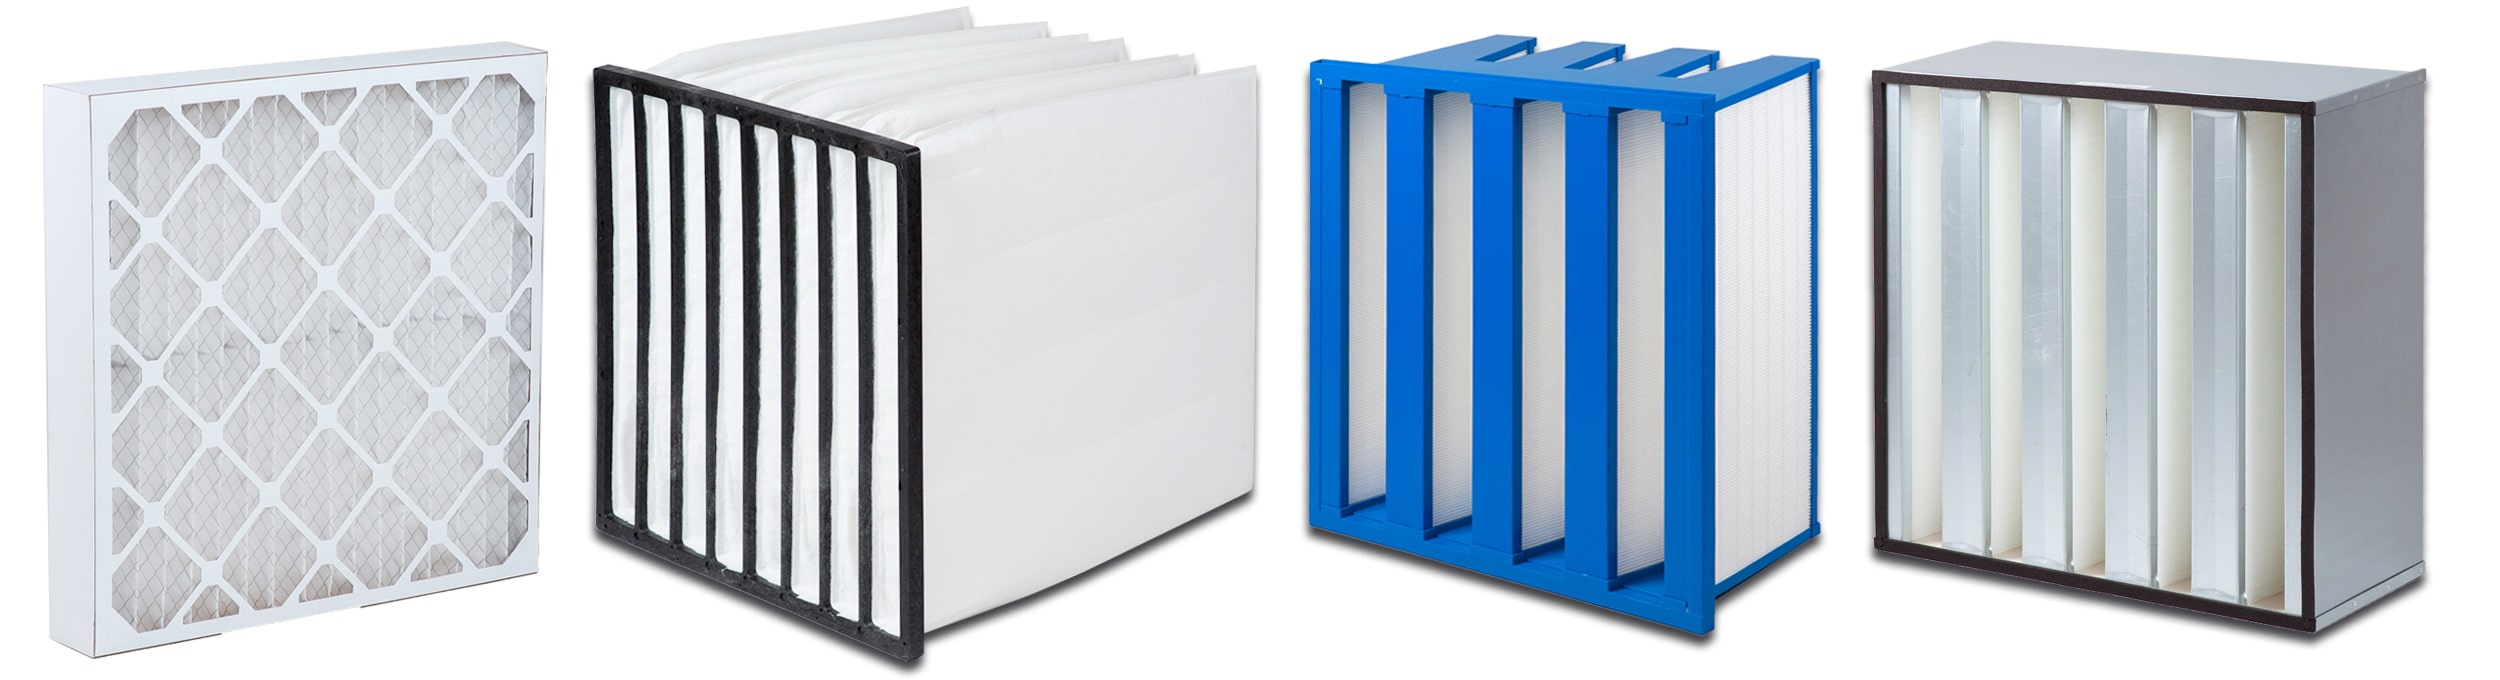 Industrial Air Filtration Products | High Volume Air & Gas Filters